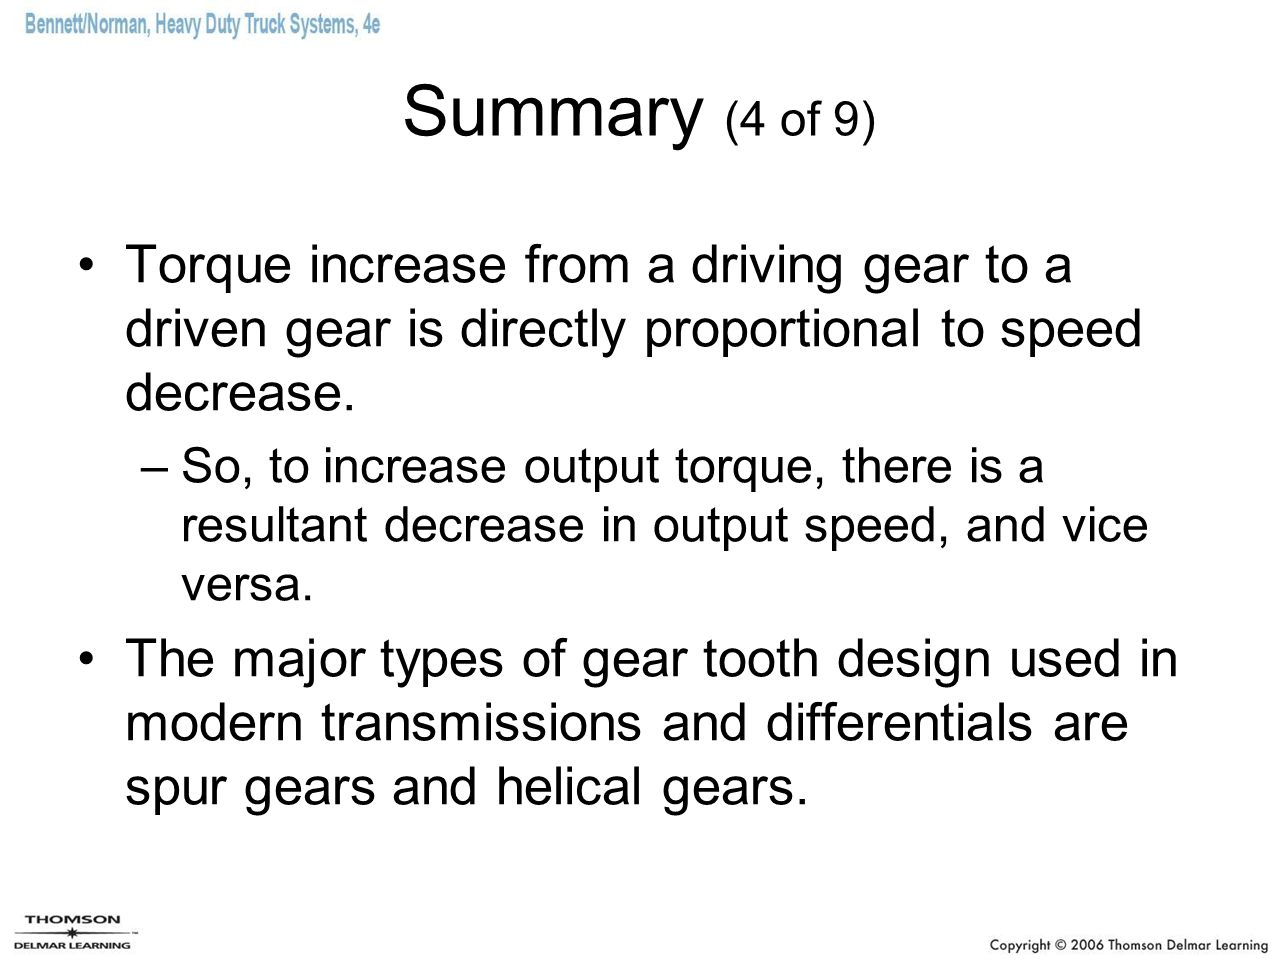 Summary (4 of 9) Torque increase from a driving gear to a driven gear is directly proportional to speed decrease.